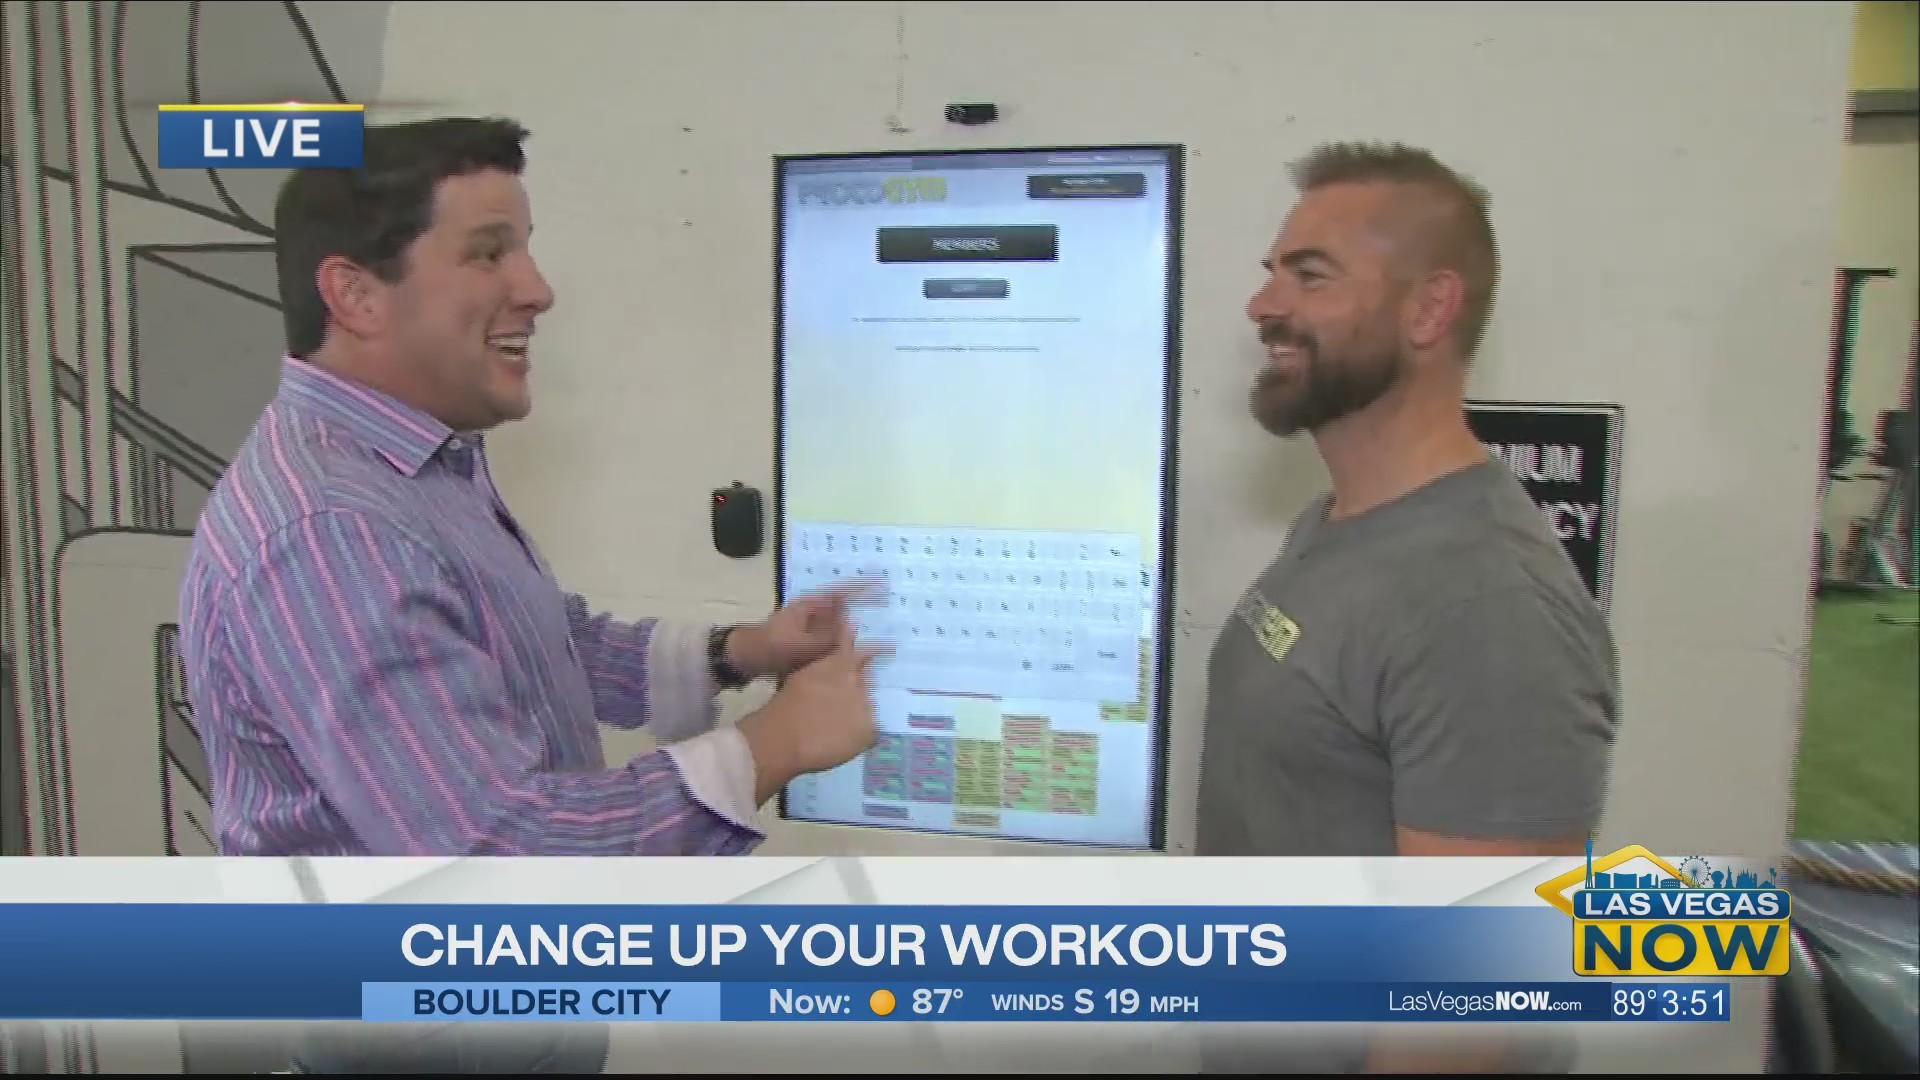 PROTOGYM mixes in software with working out